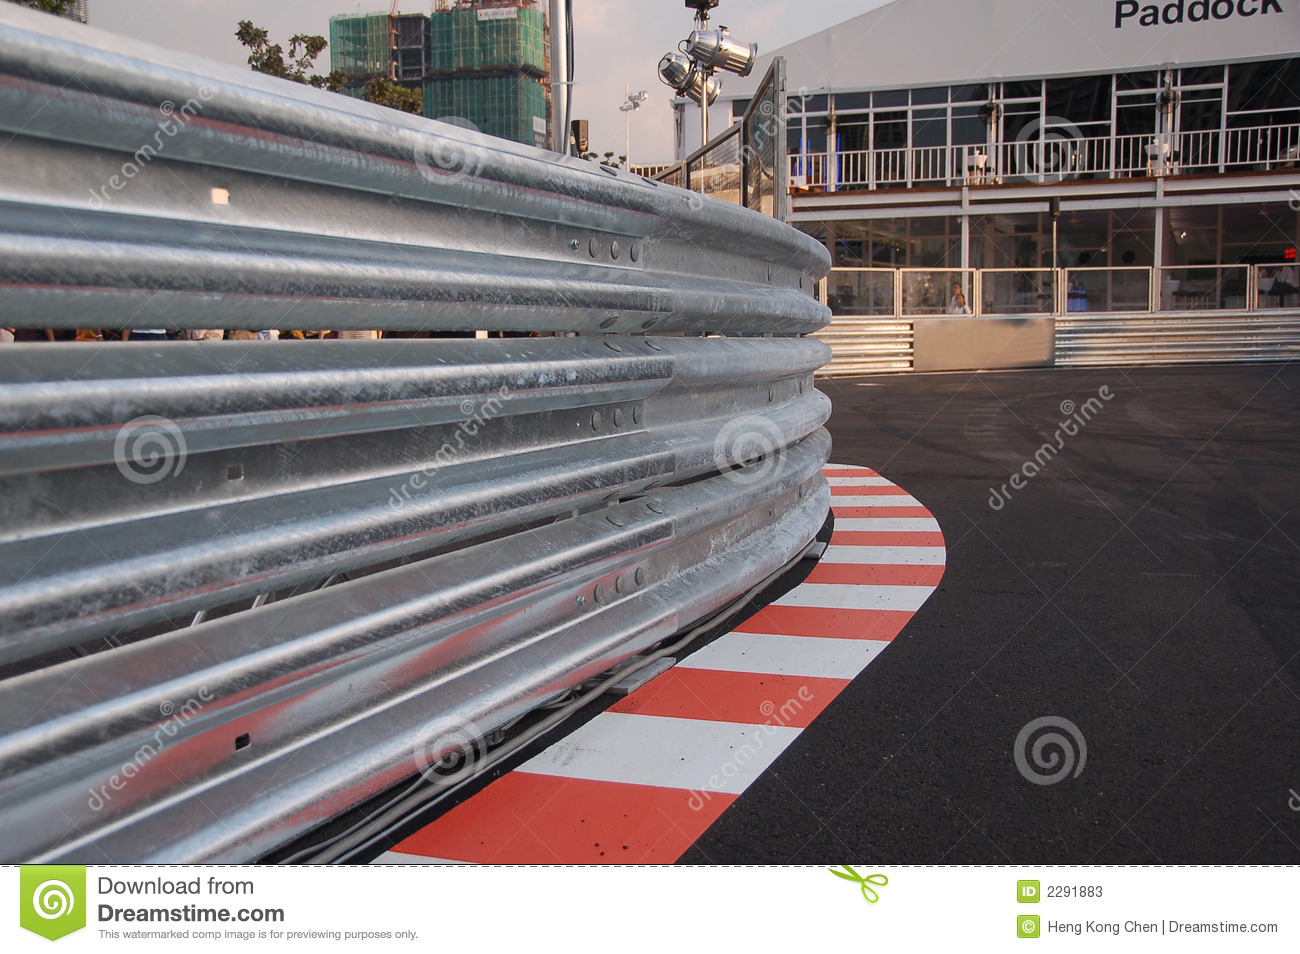 Railing of a race track